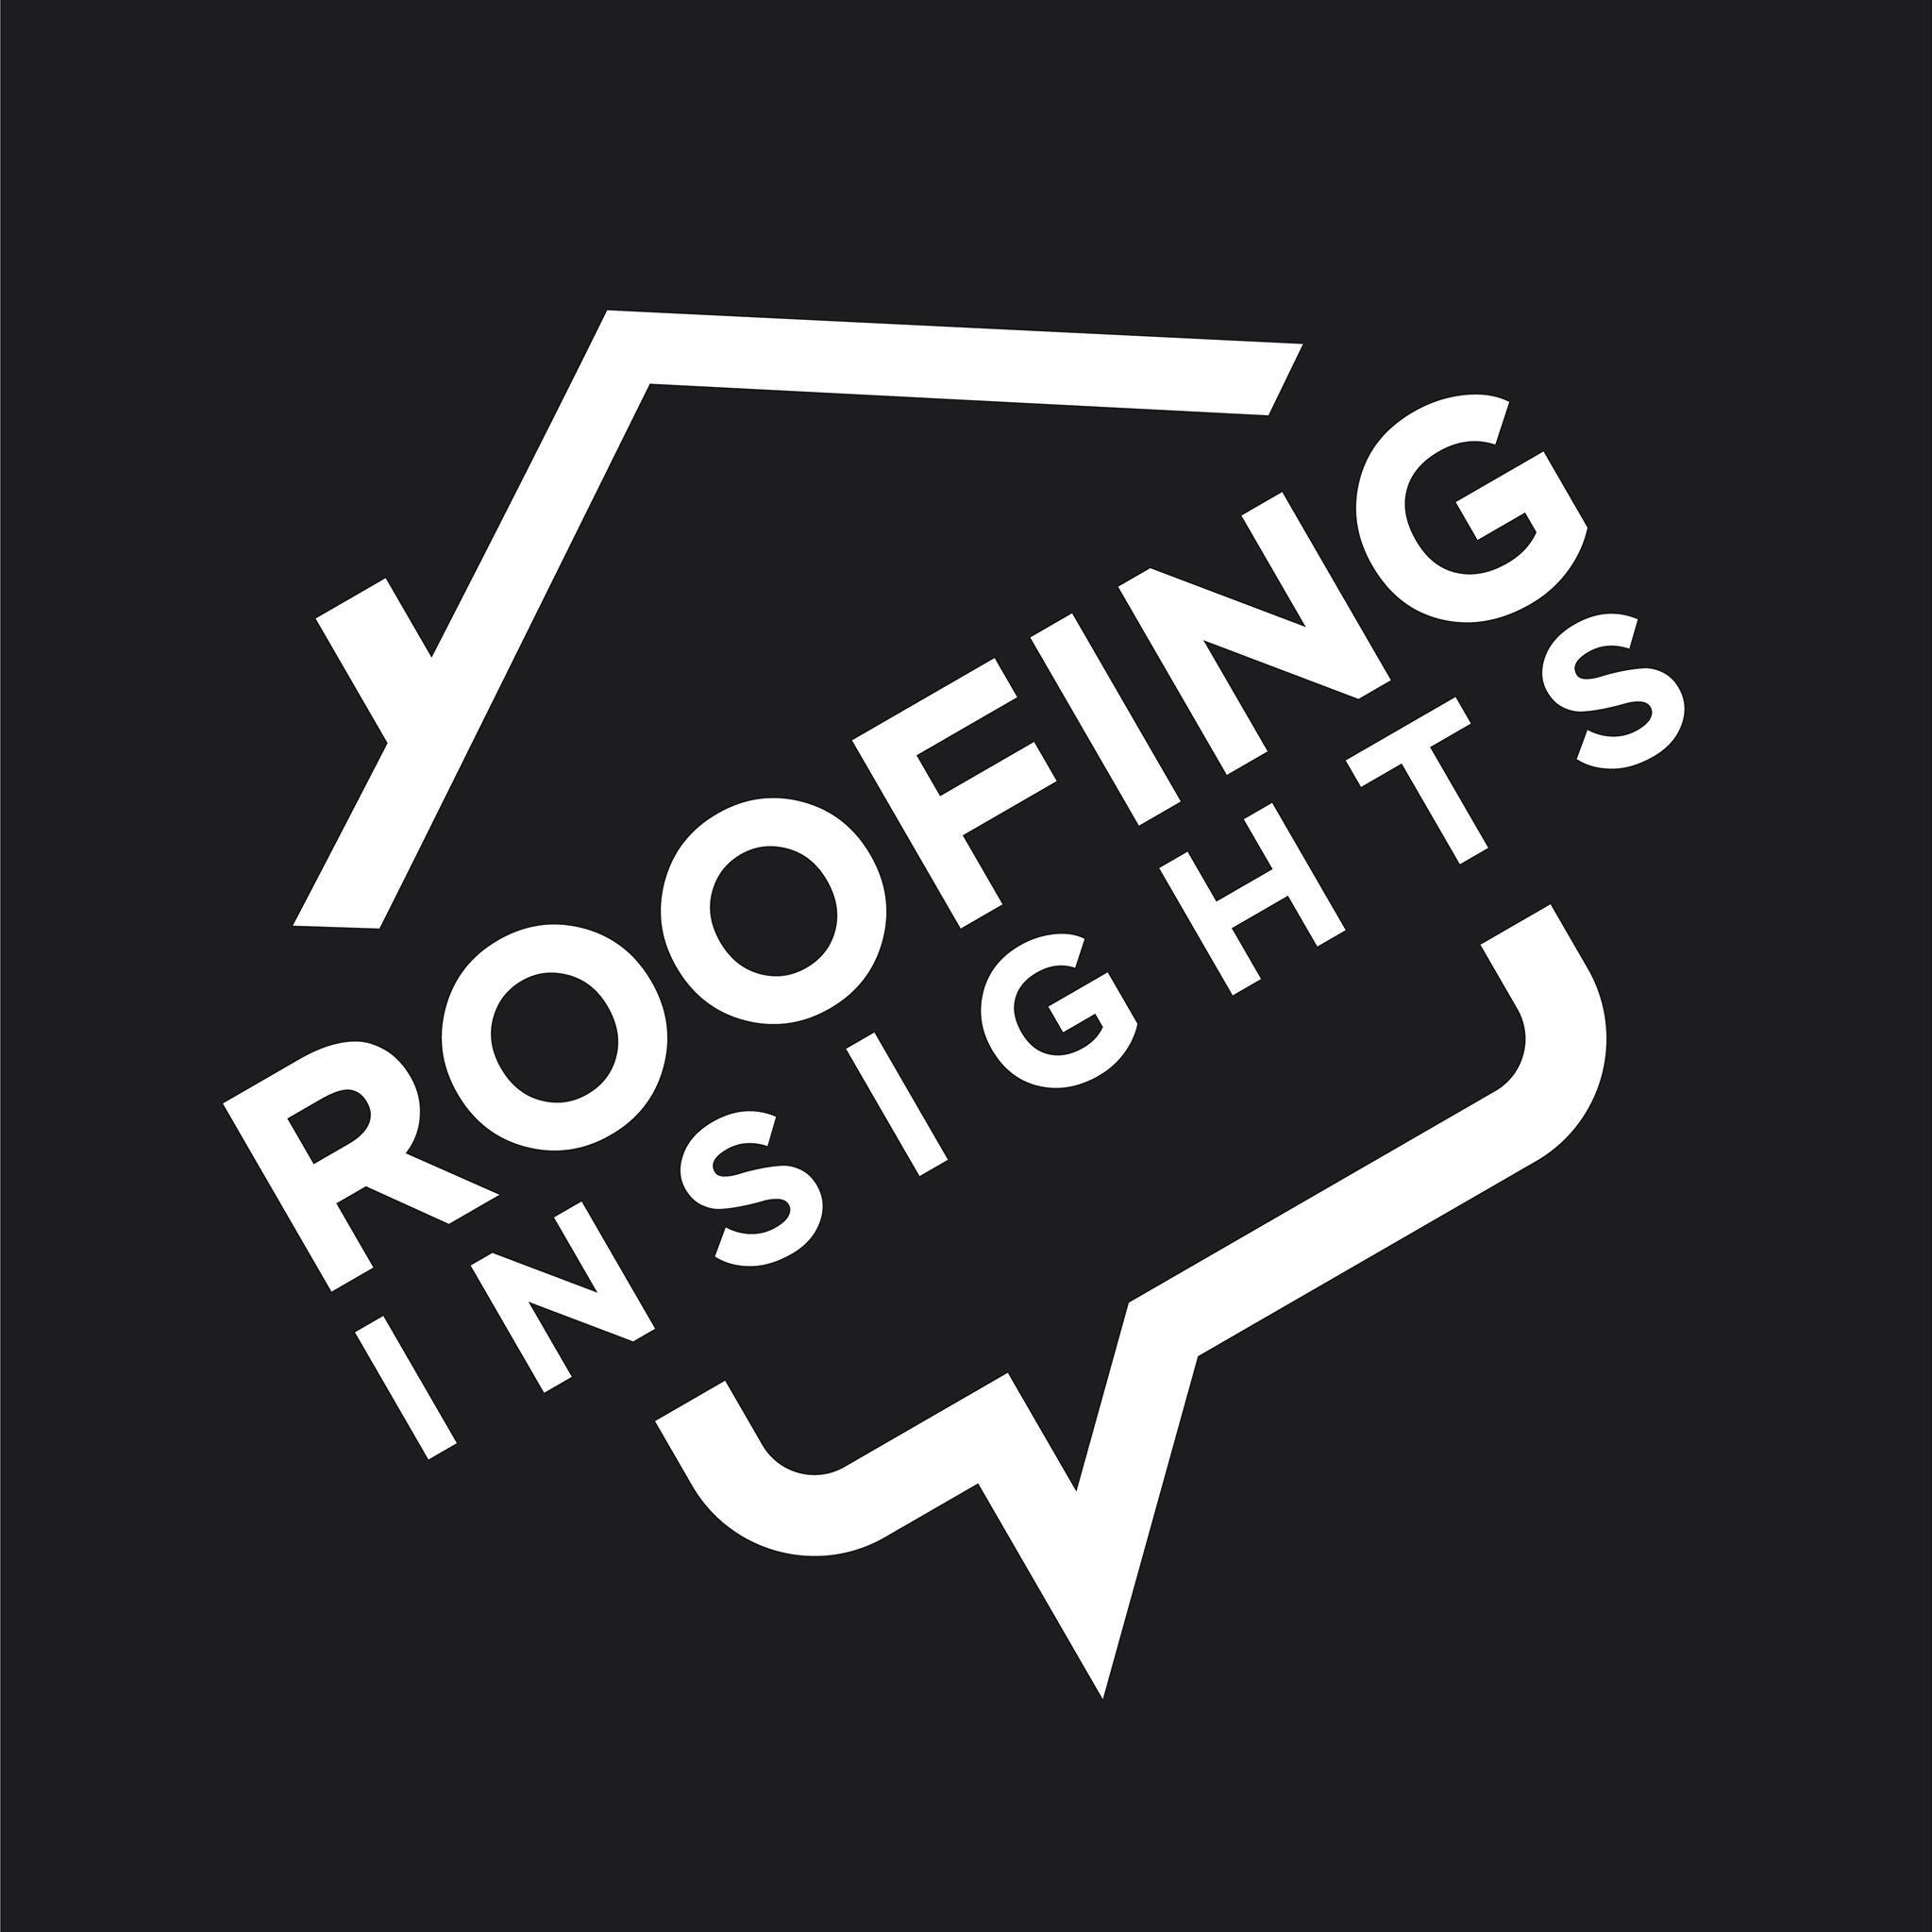 Roofing Insights Directory Helps Homeowners Looking For New Ways to Find Reputable Roofers Online